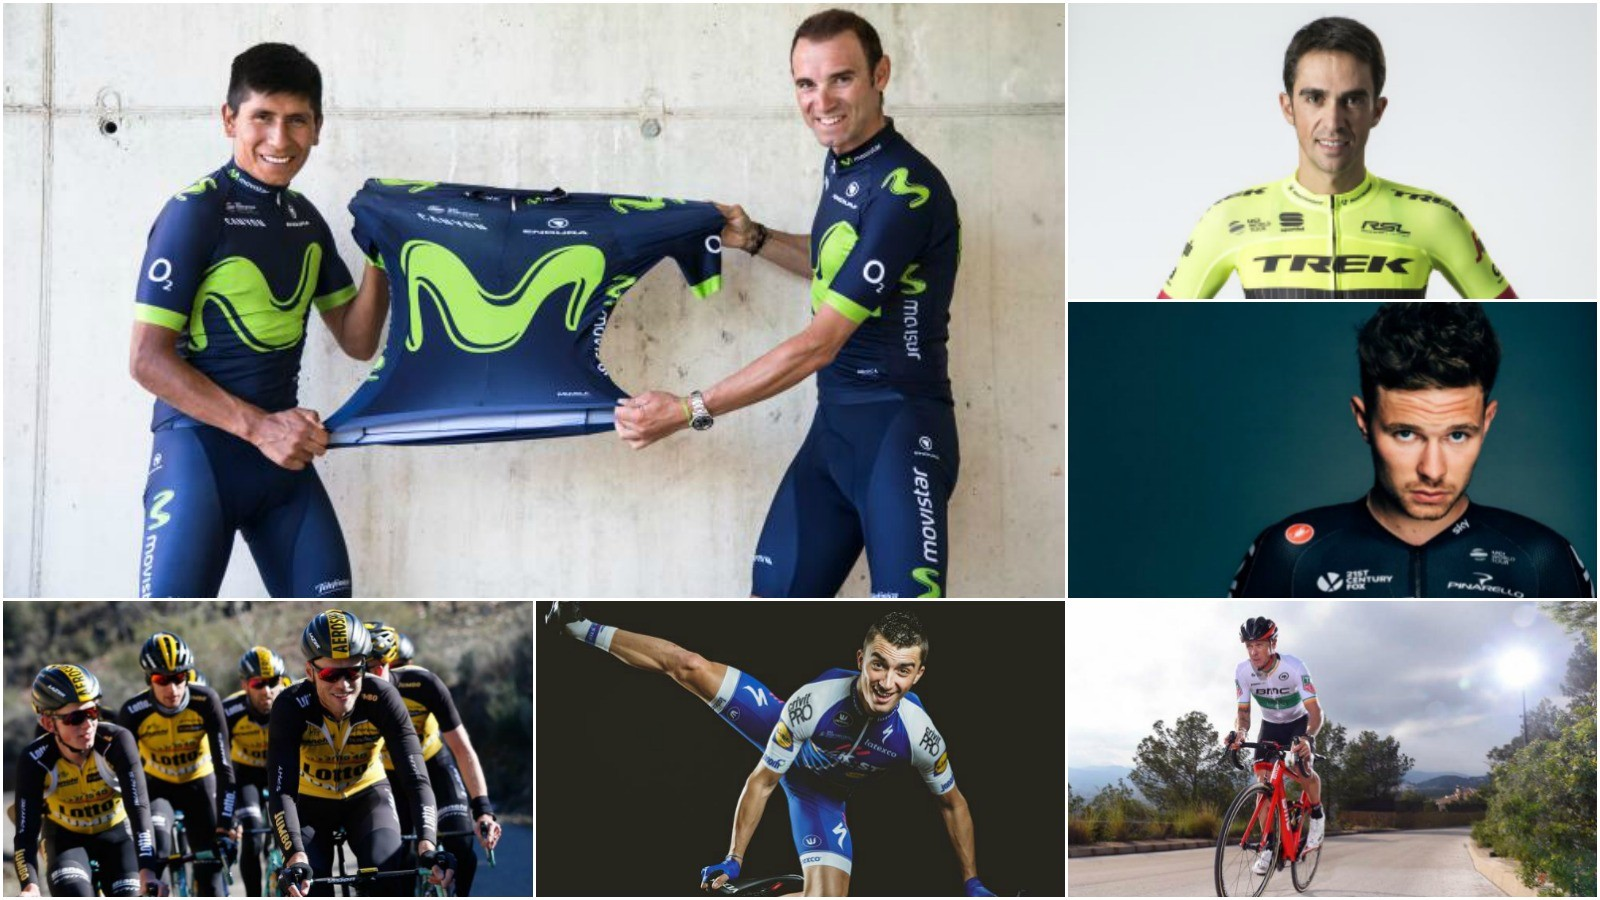 Many riders revealed their 2017 kit on Twitter shortly after the new year rolled in